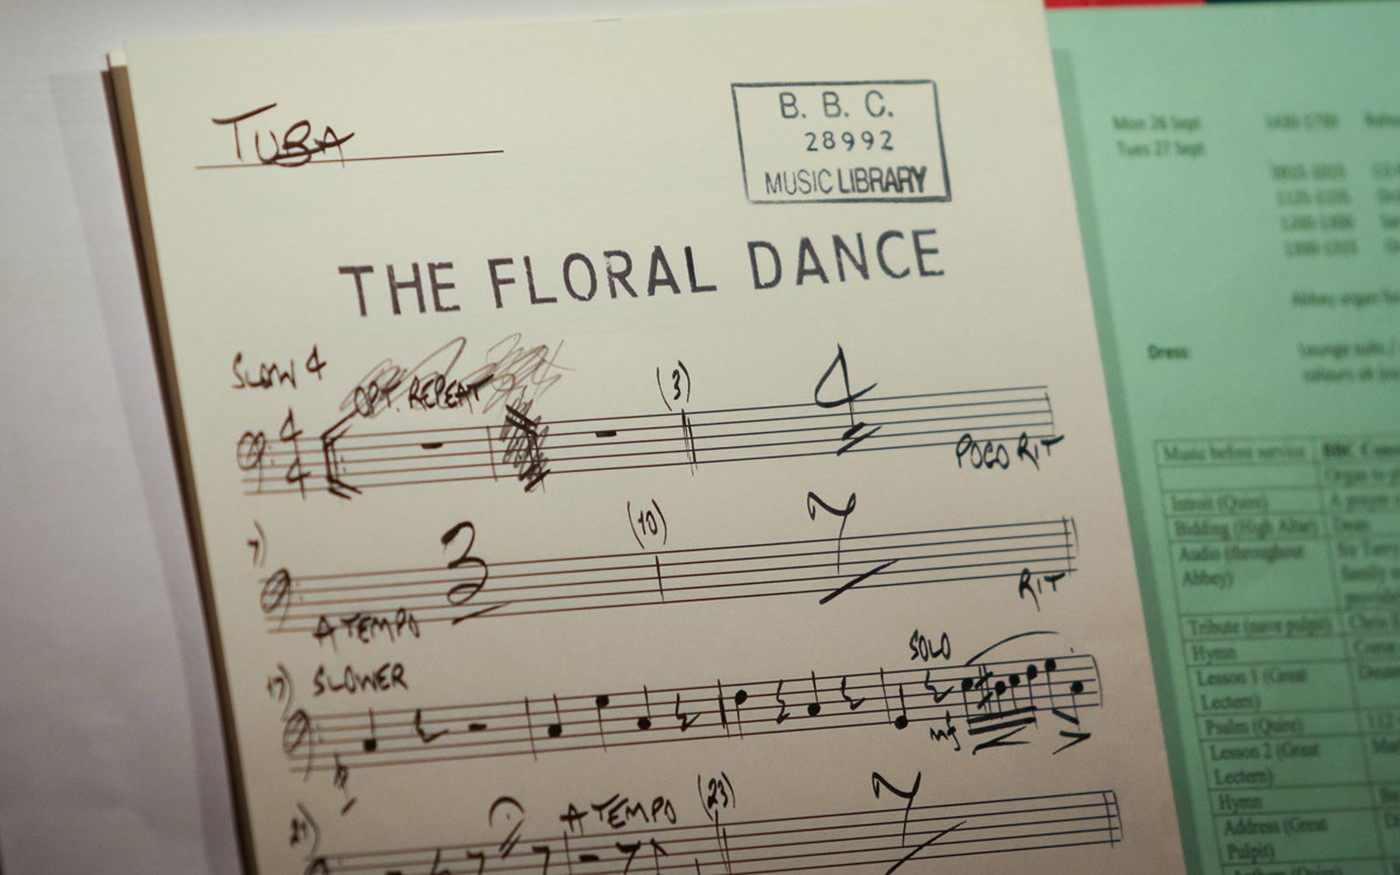 The service ended with The Floral Dance by Katie Moss, recorded by Terry Wogan in 1978